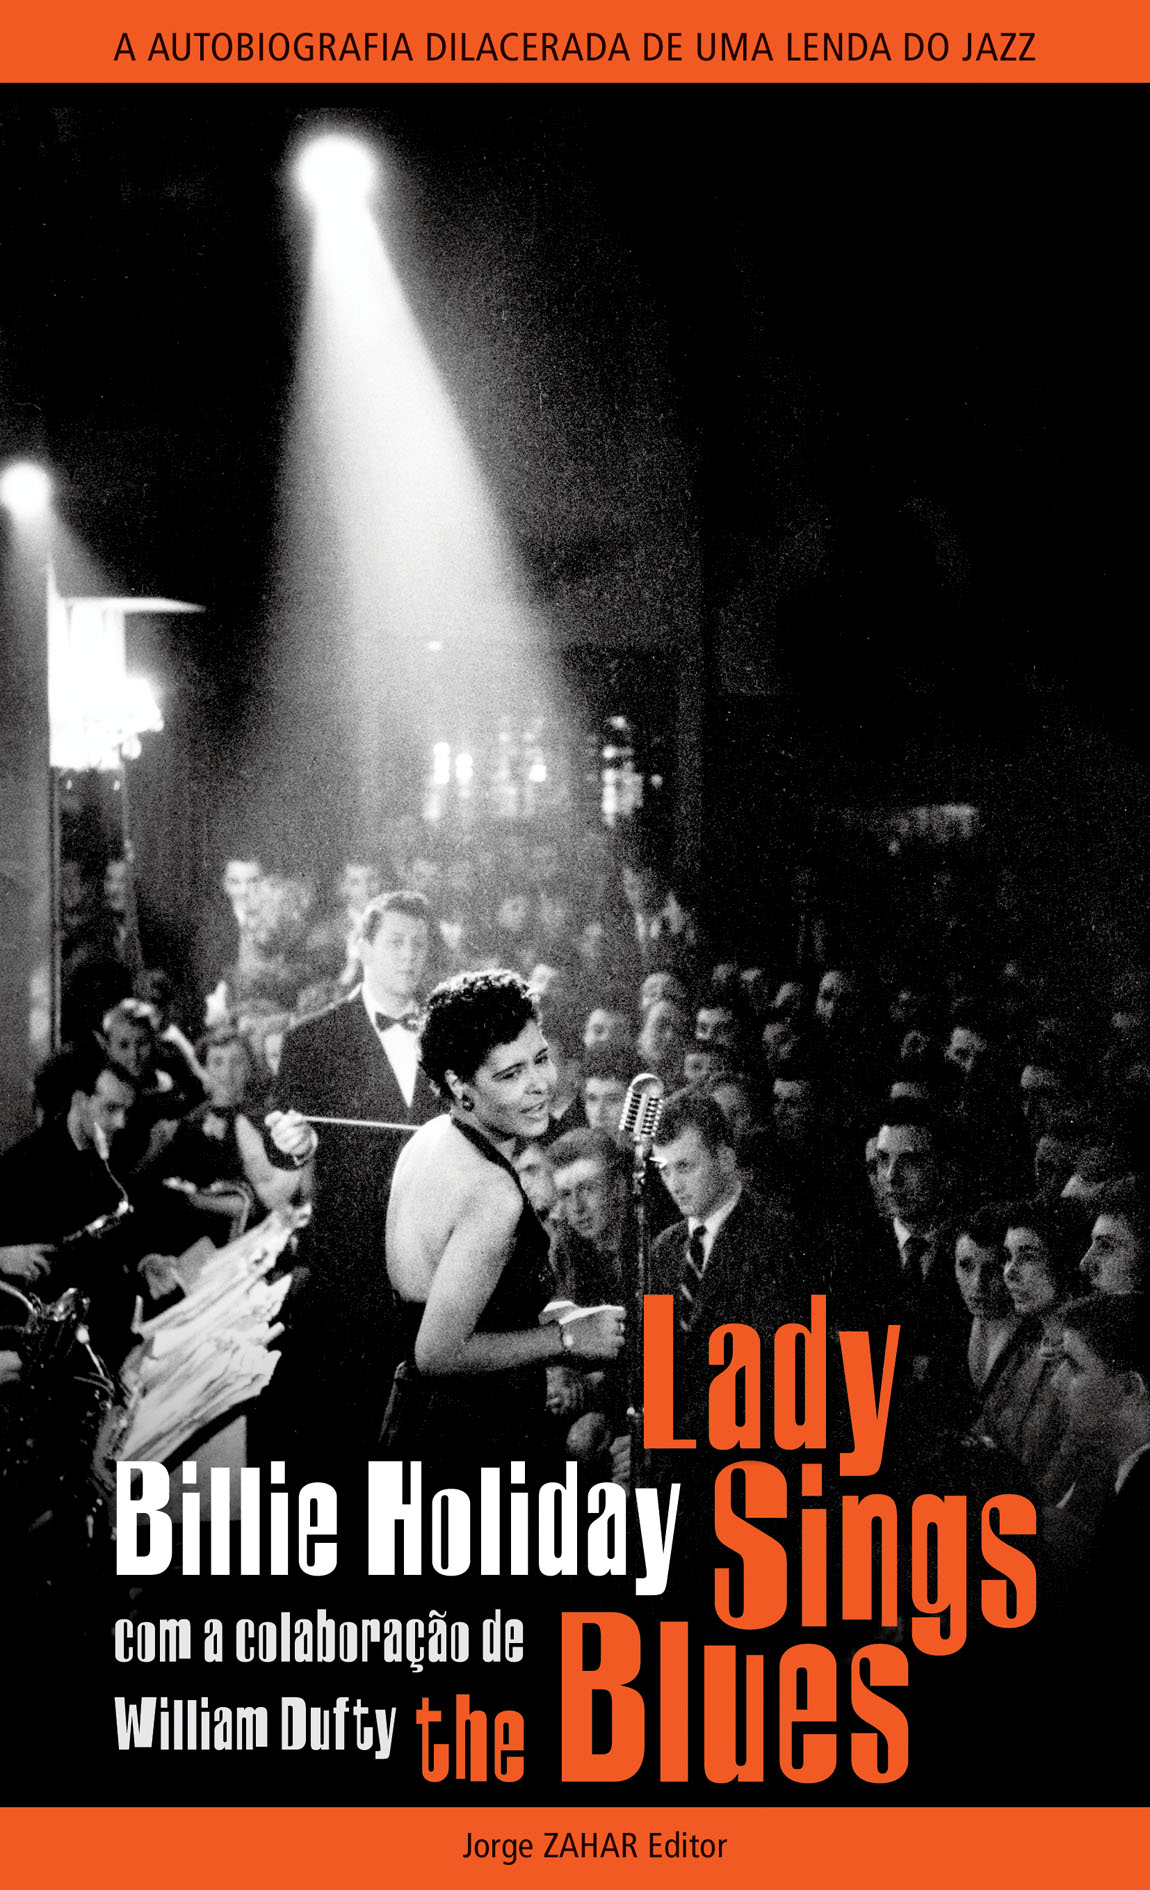 http://lounge.obviousmag.org/isso_compensa/2015/04/05/billie_holiday_livro.jpg